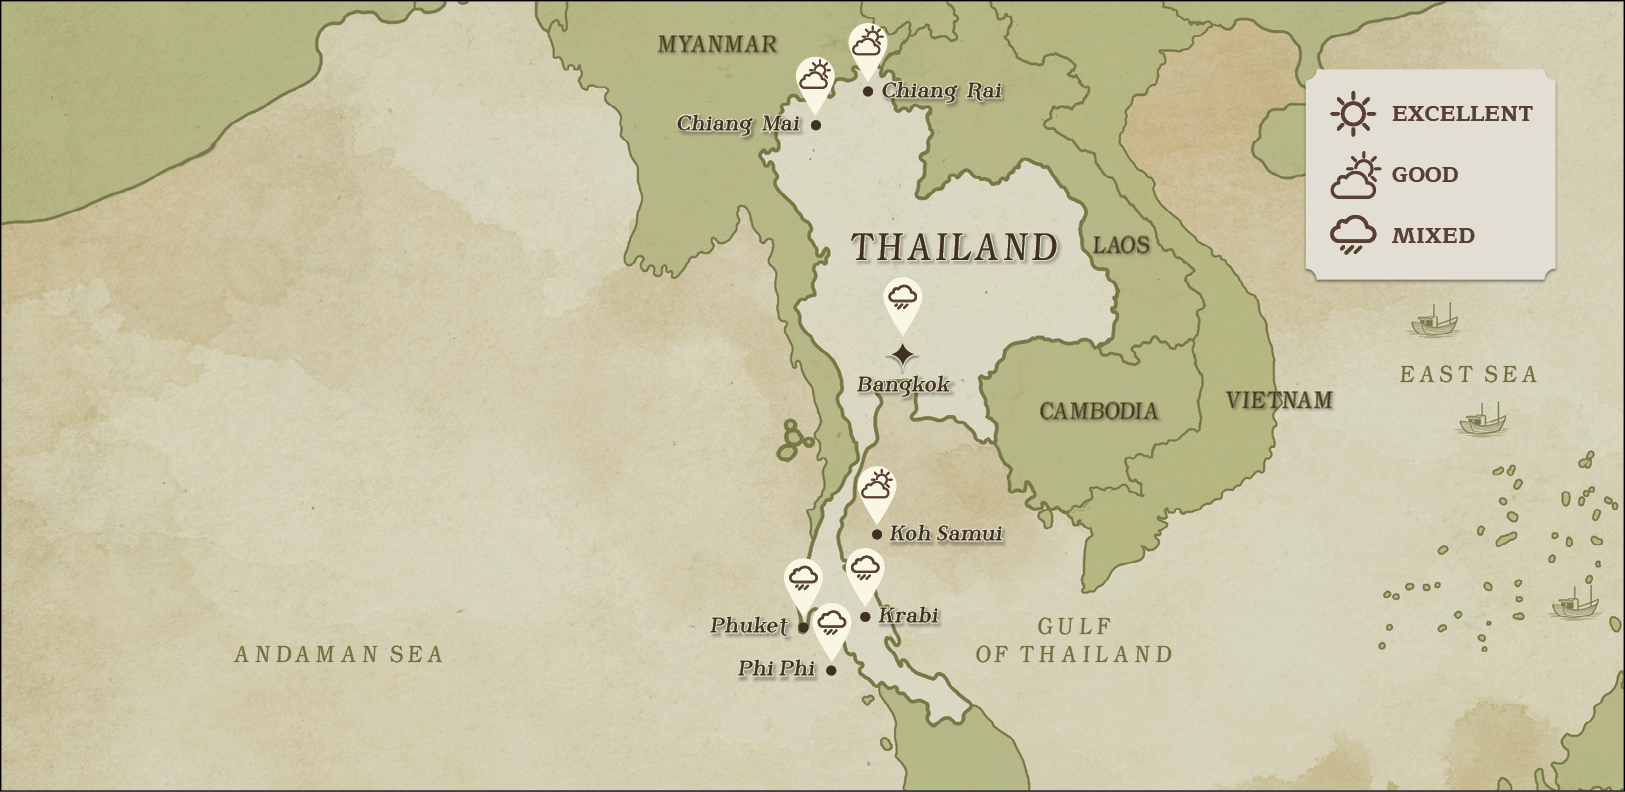 THAILAND WEATHER MAP September